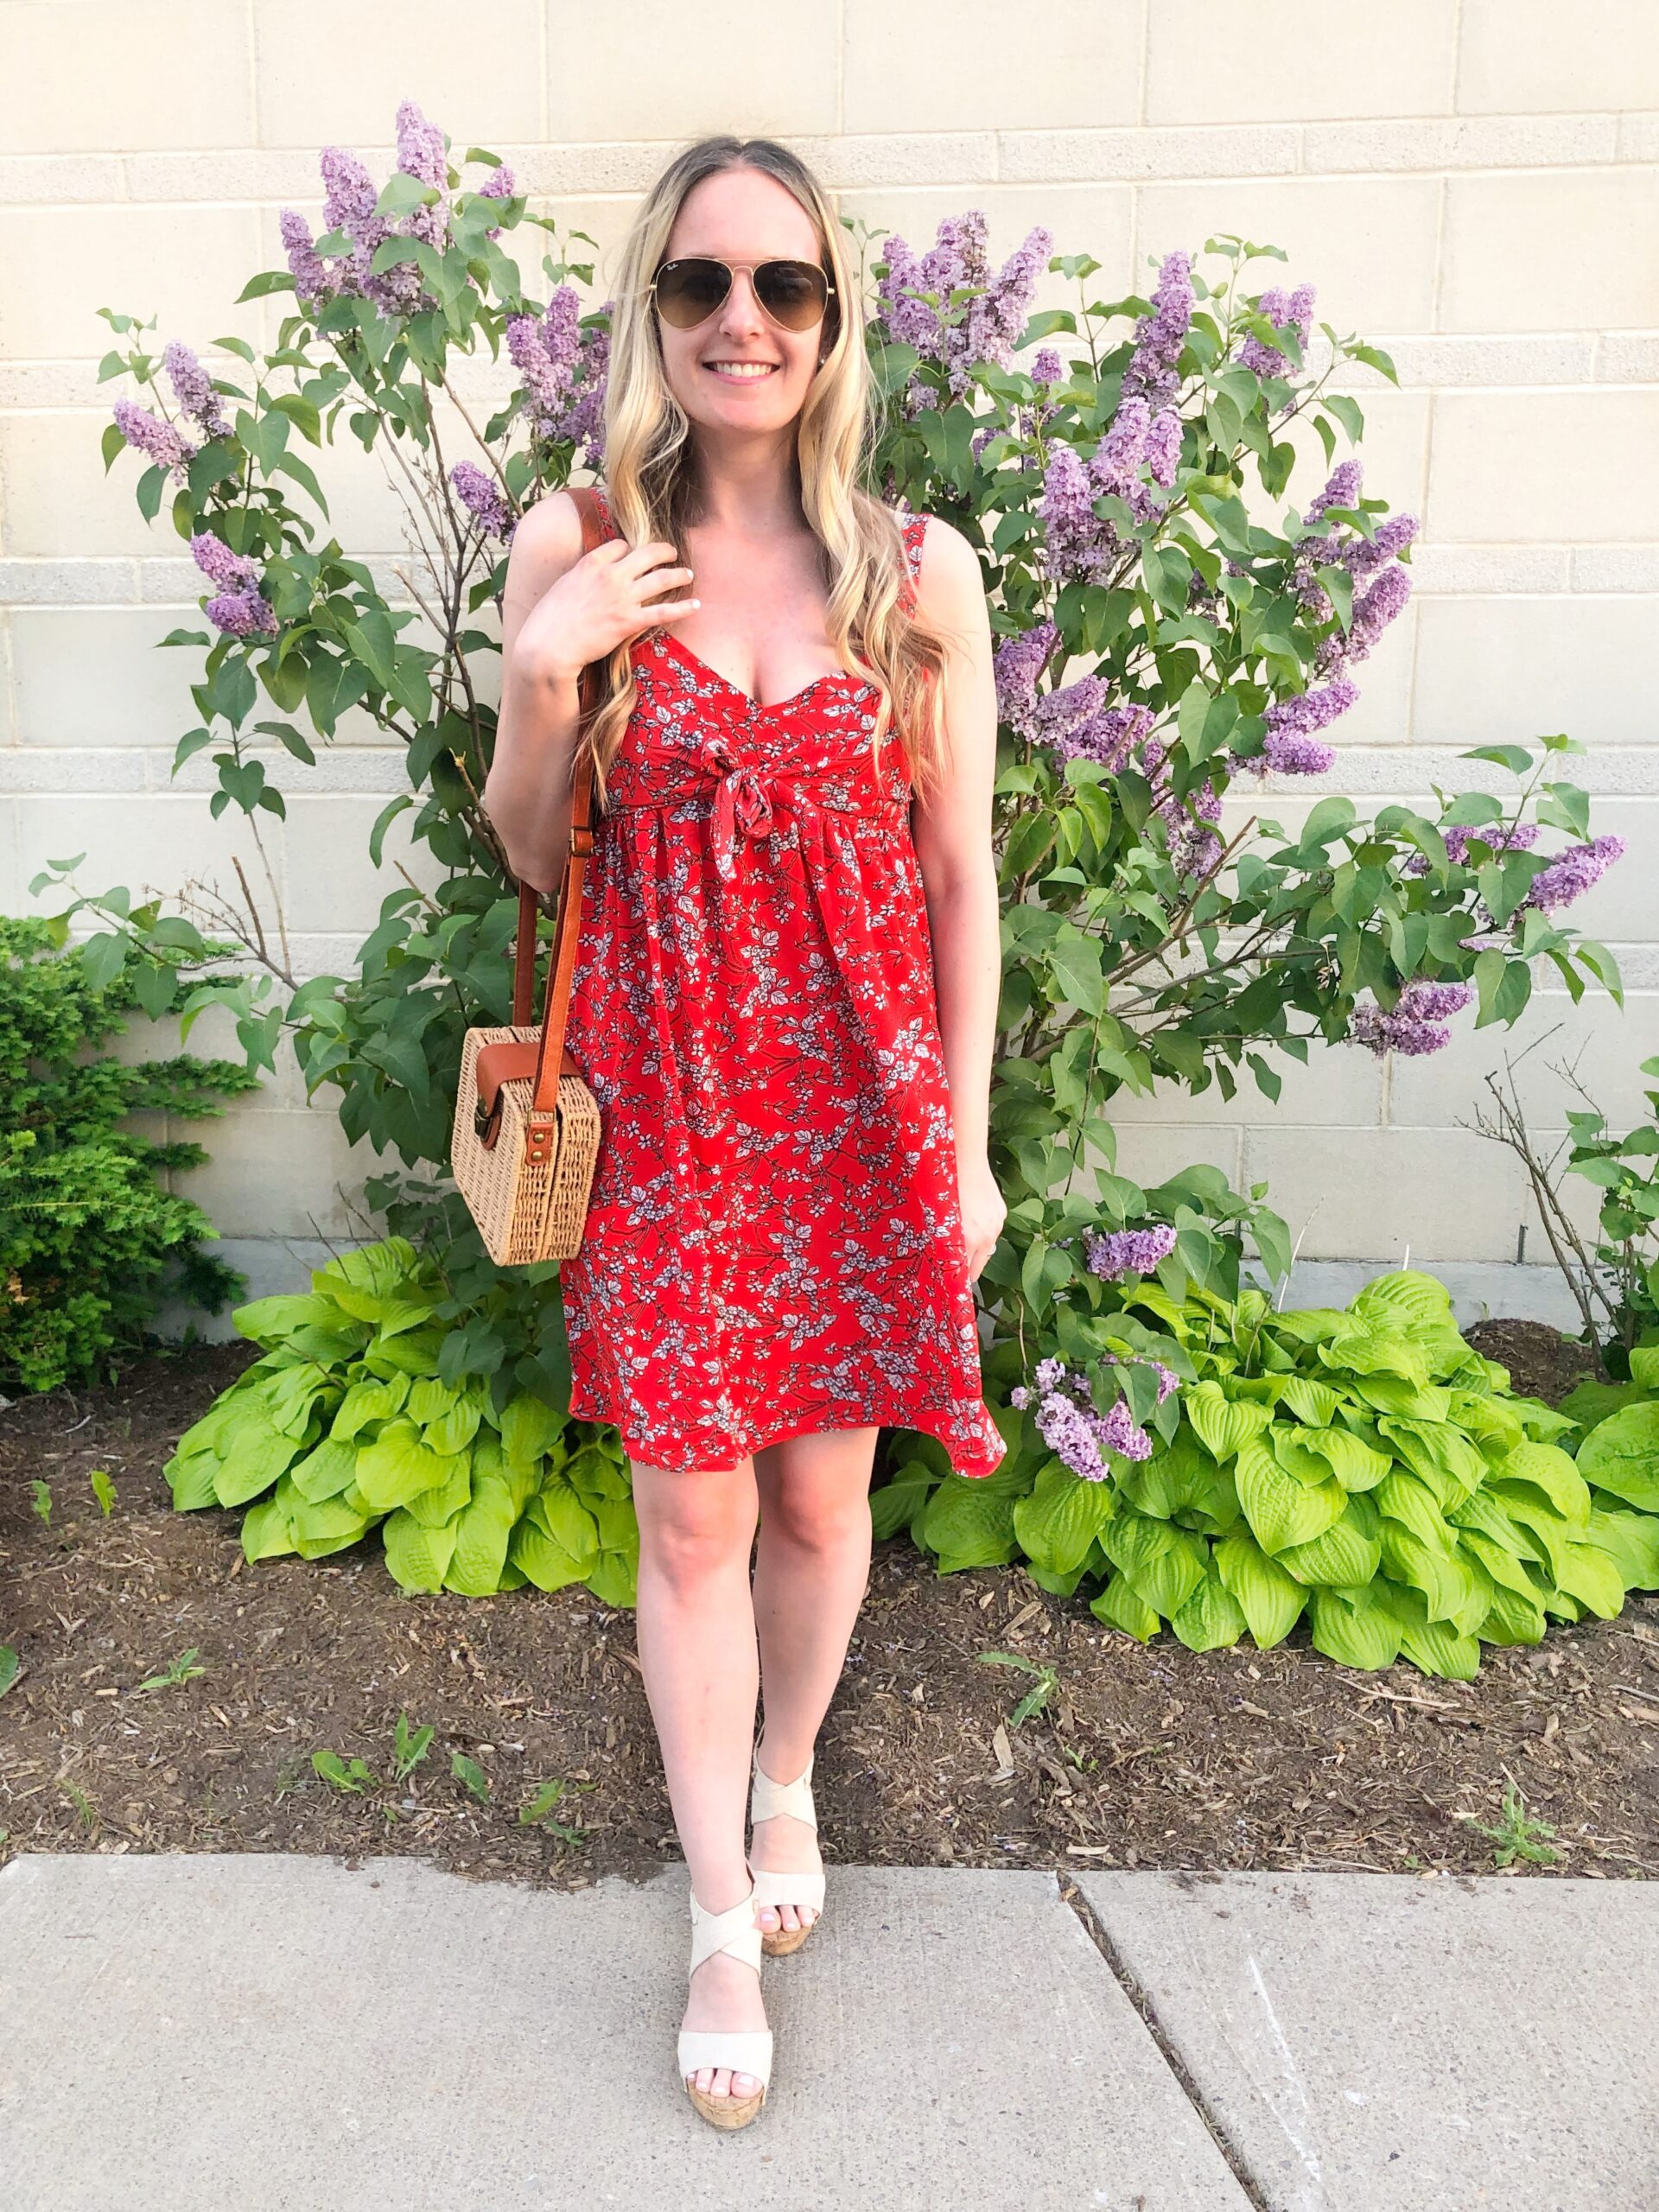 Red Dress with Pockets from Shein on Livin' Life with Style